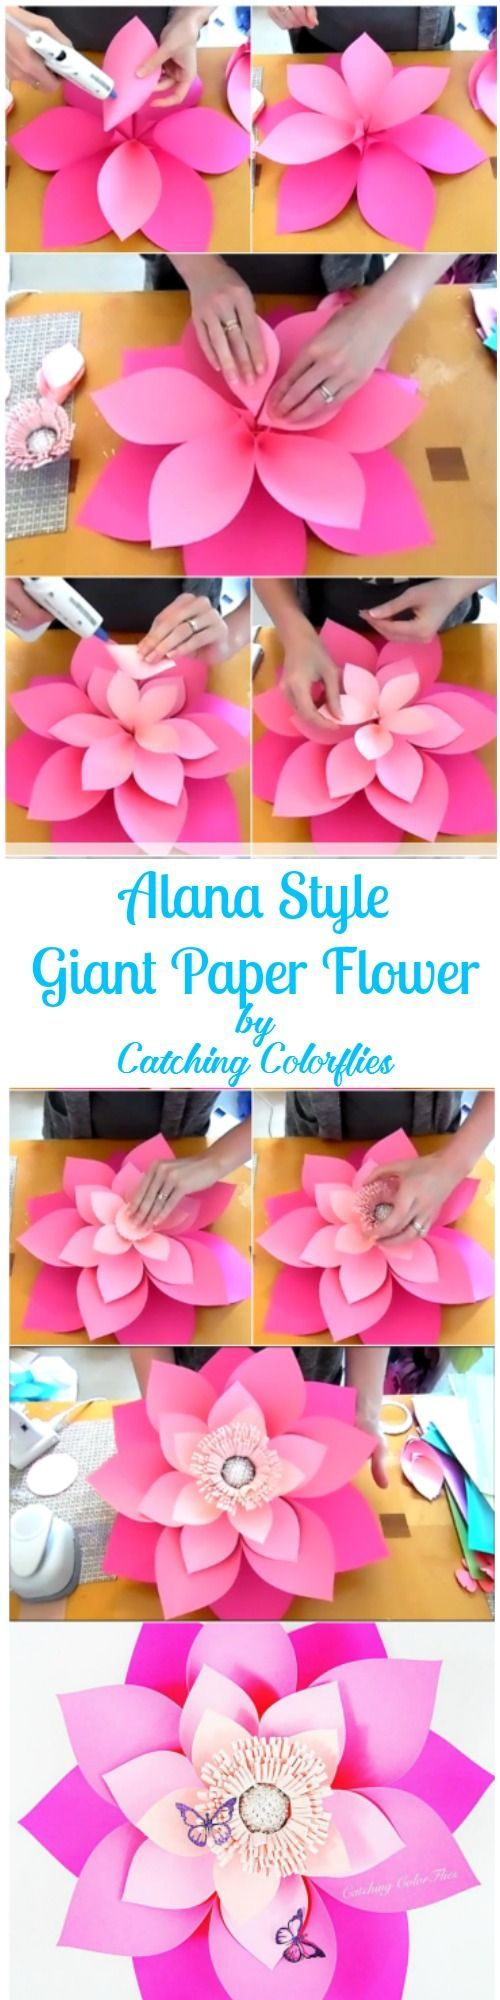 Alana style giant flower templates ombre template and 21st alana style giant flower templates izmirmasajfo